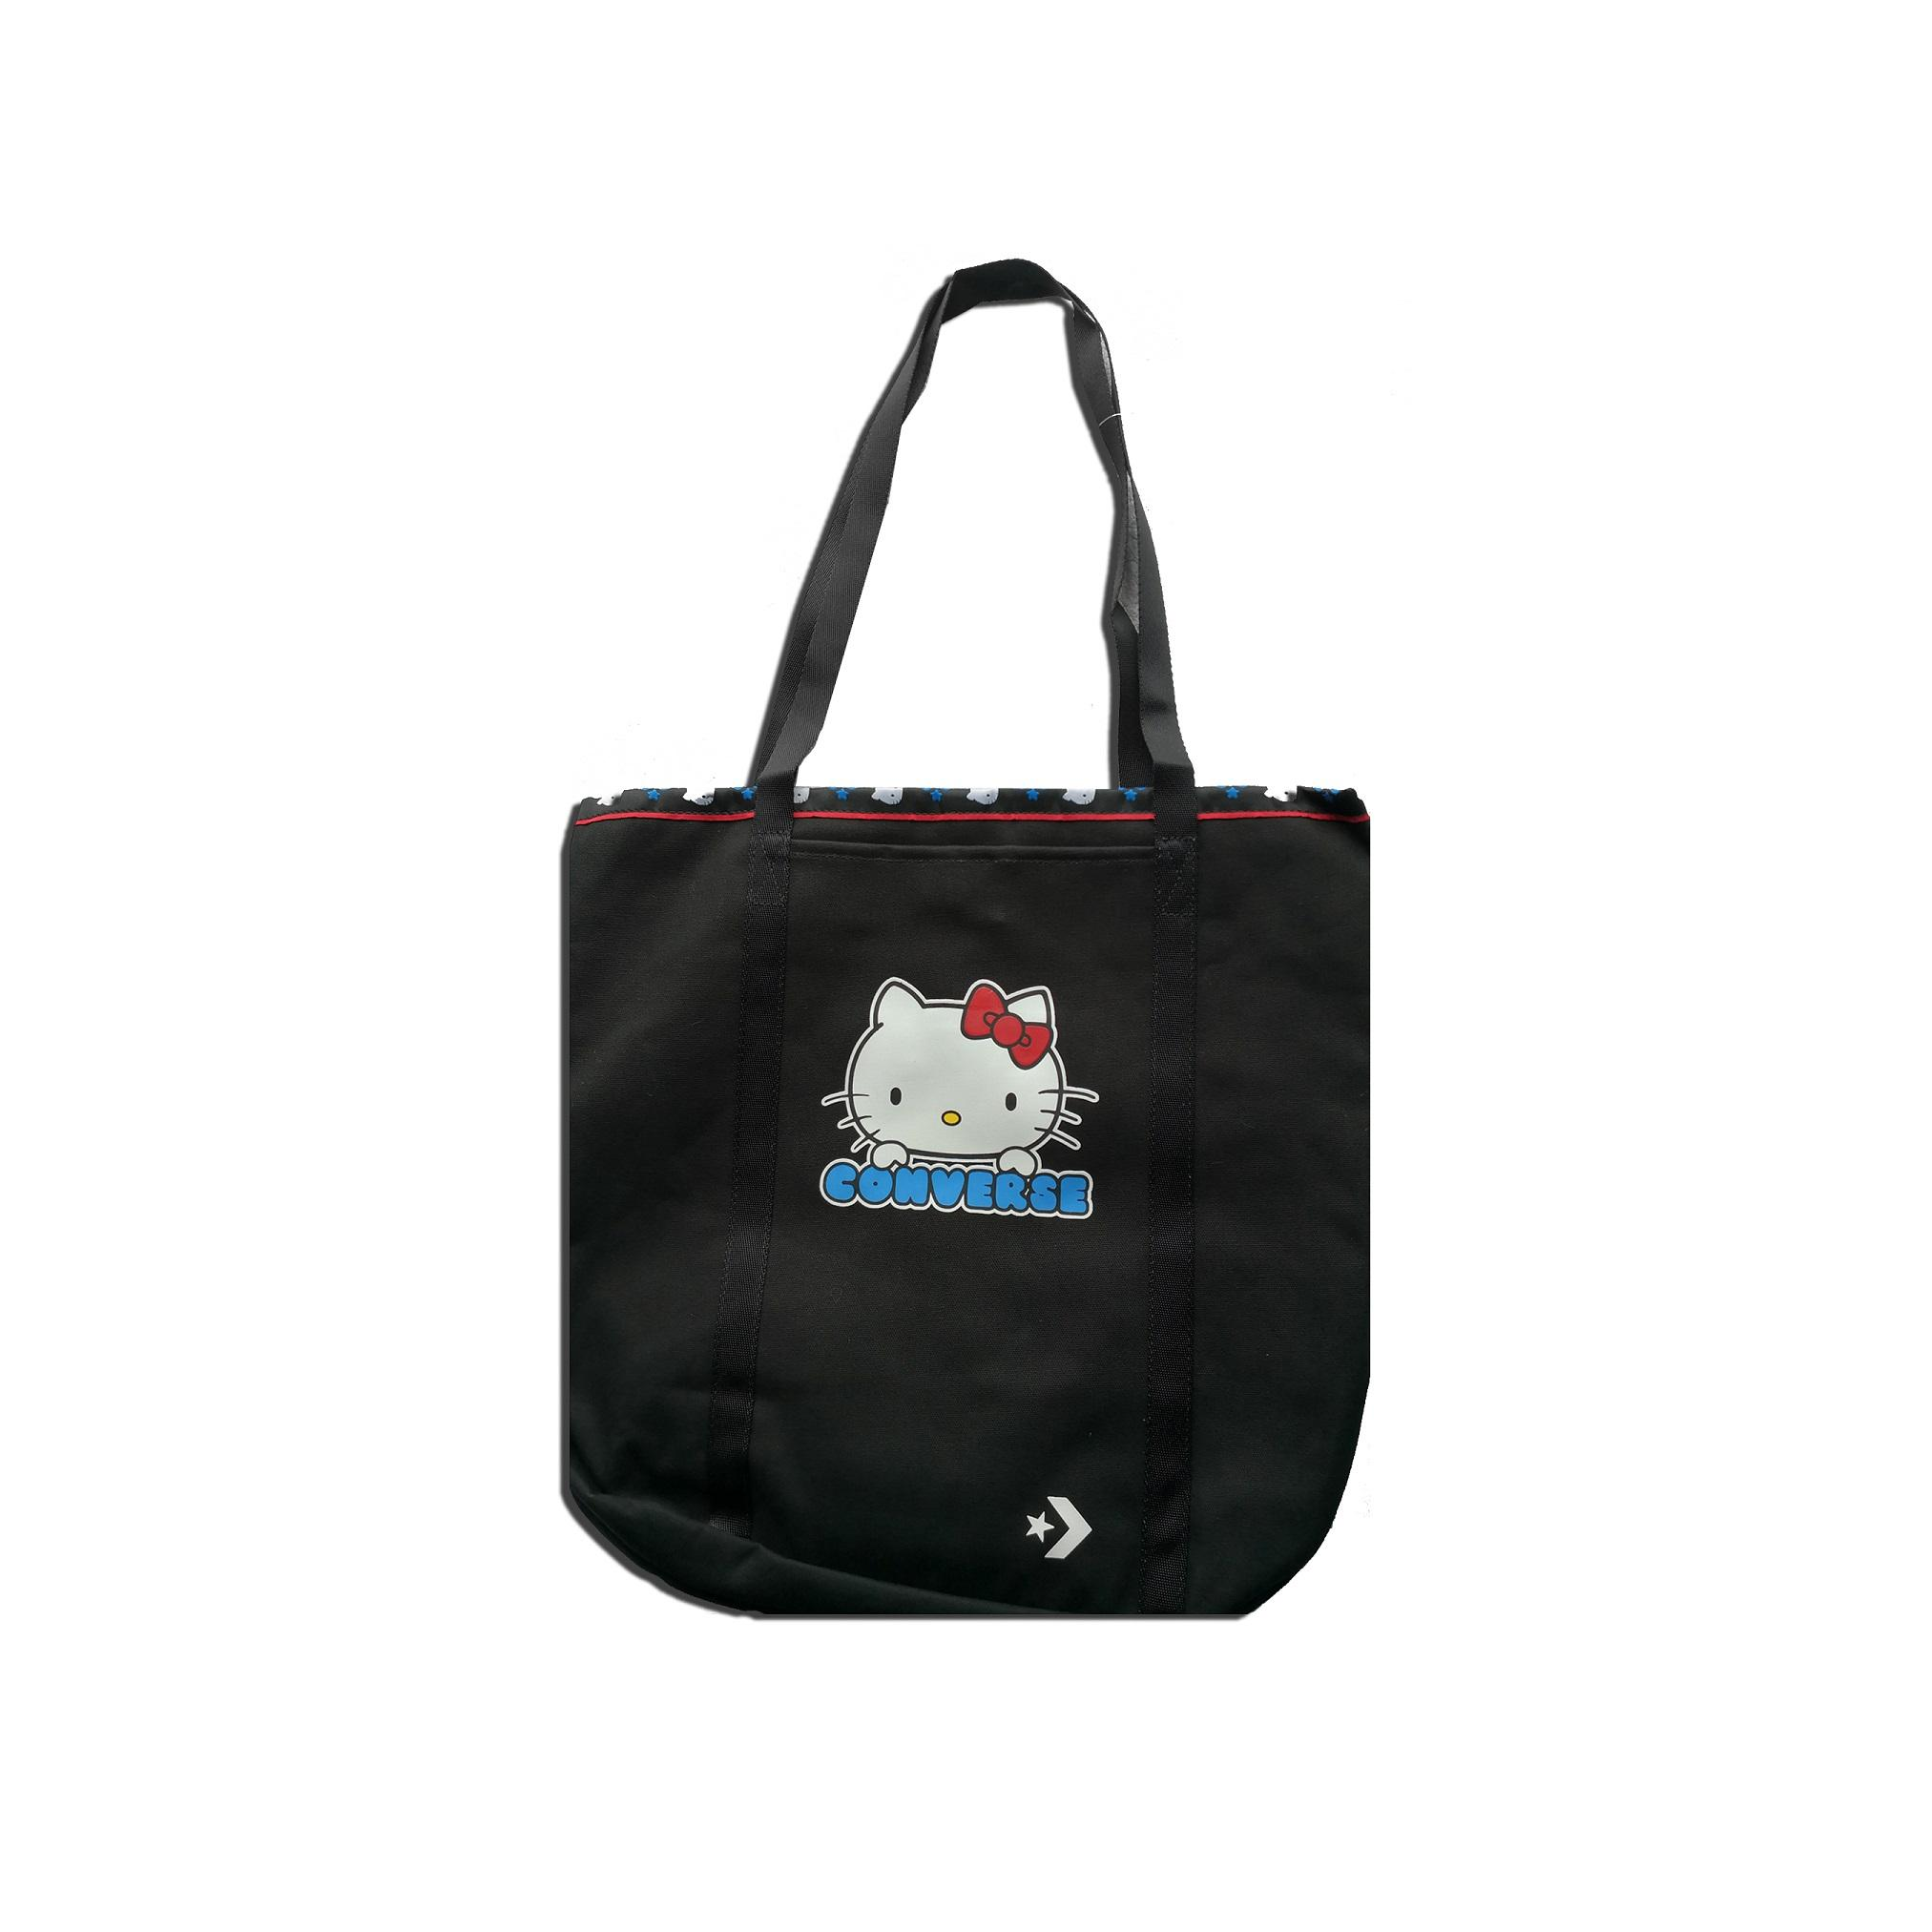 Converse X HelloKitty Limited Edition Tote Bag